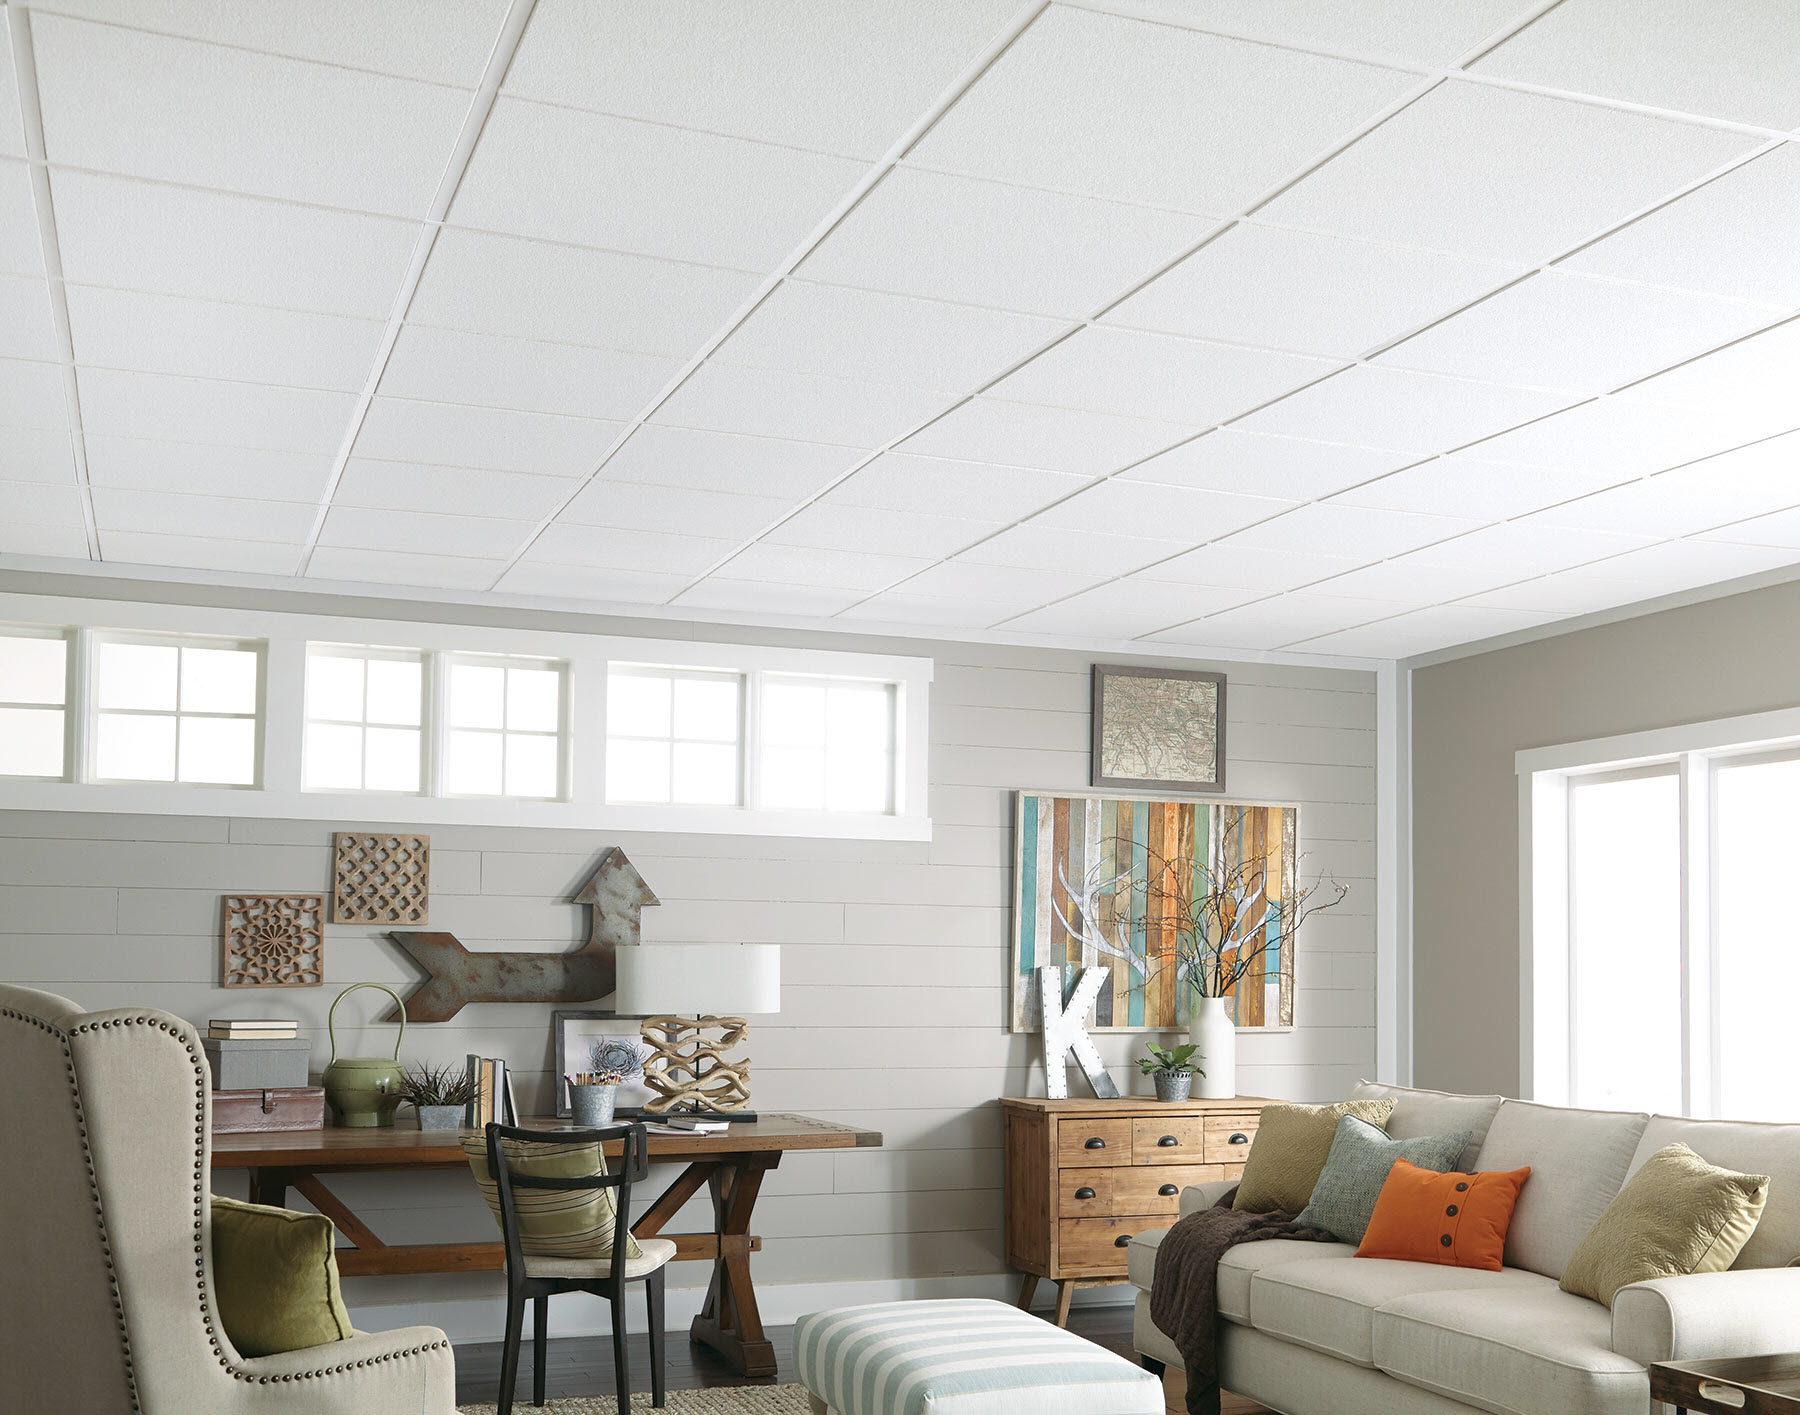 Awesome 12 By 12 Ceiling Tiles Small 2 By 4 Ceiling Tiles Flat 24X24 Marble Floor Tiles 2X4 Drop Ceiling Tiles Home Depot Young 2X4 Tin Ceiling Tiles Blue4X4 Ceramic Tile Acoustic Drop Ceiling Tiles | Armstrong Ceilings Residential